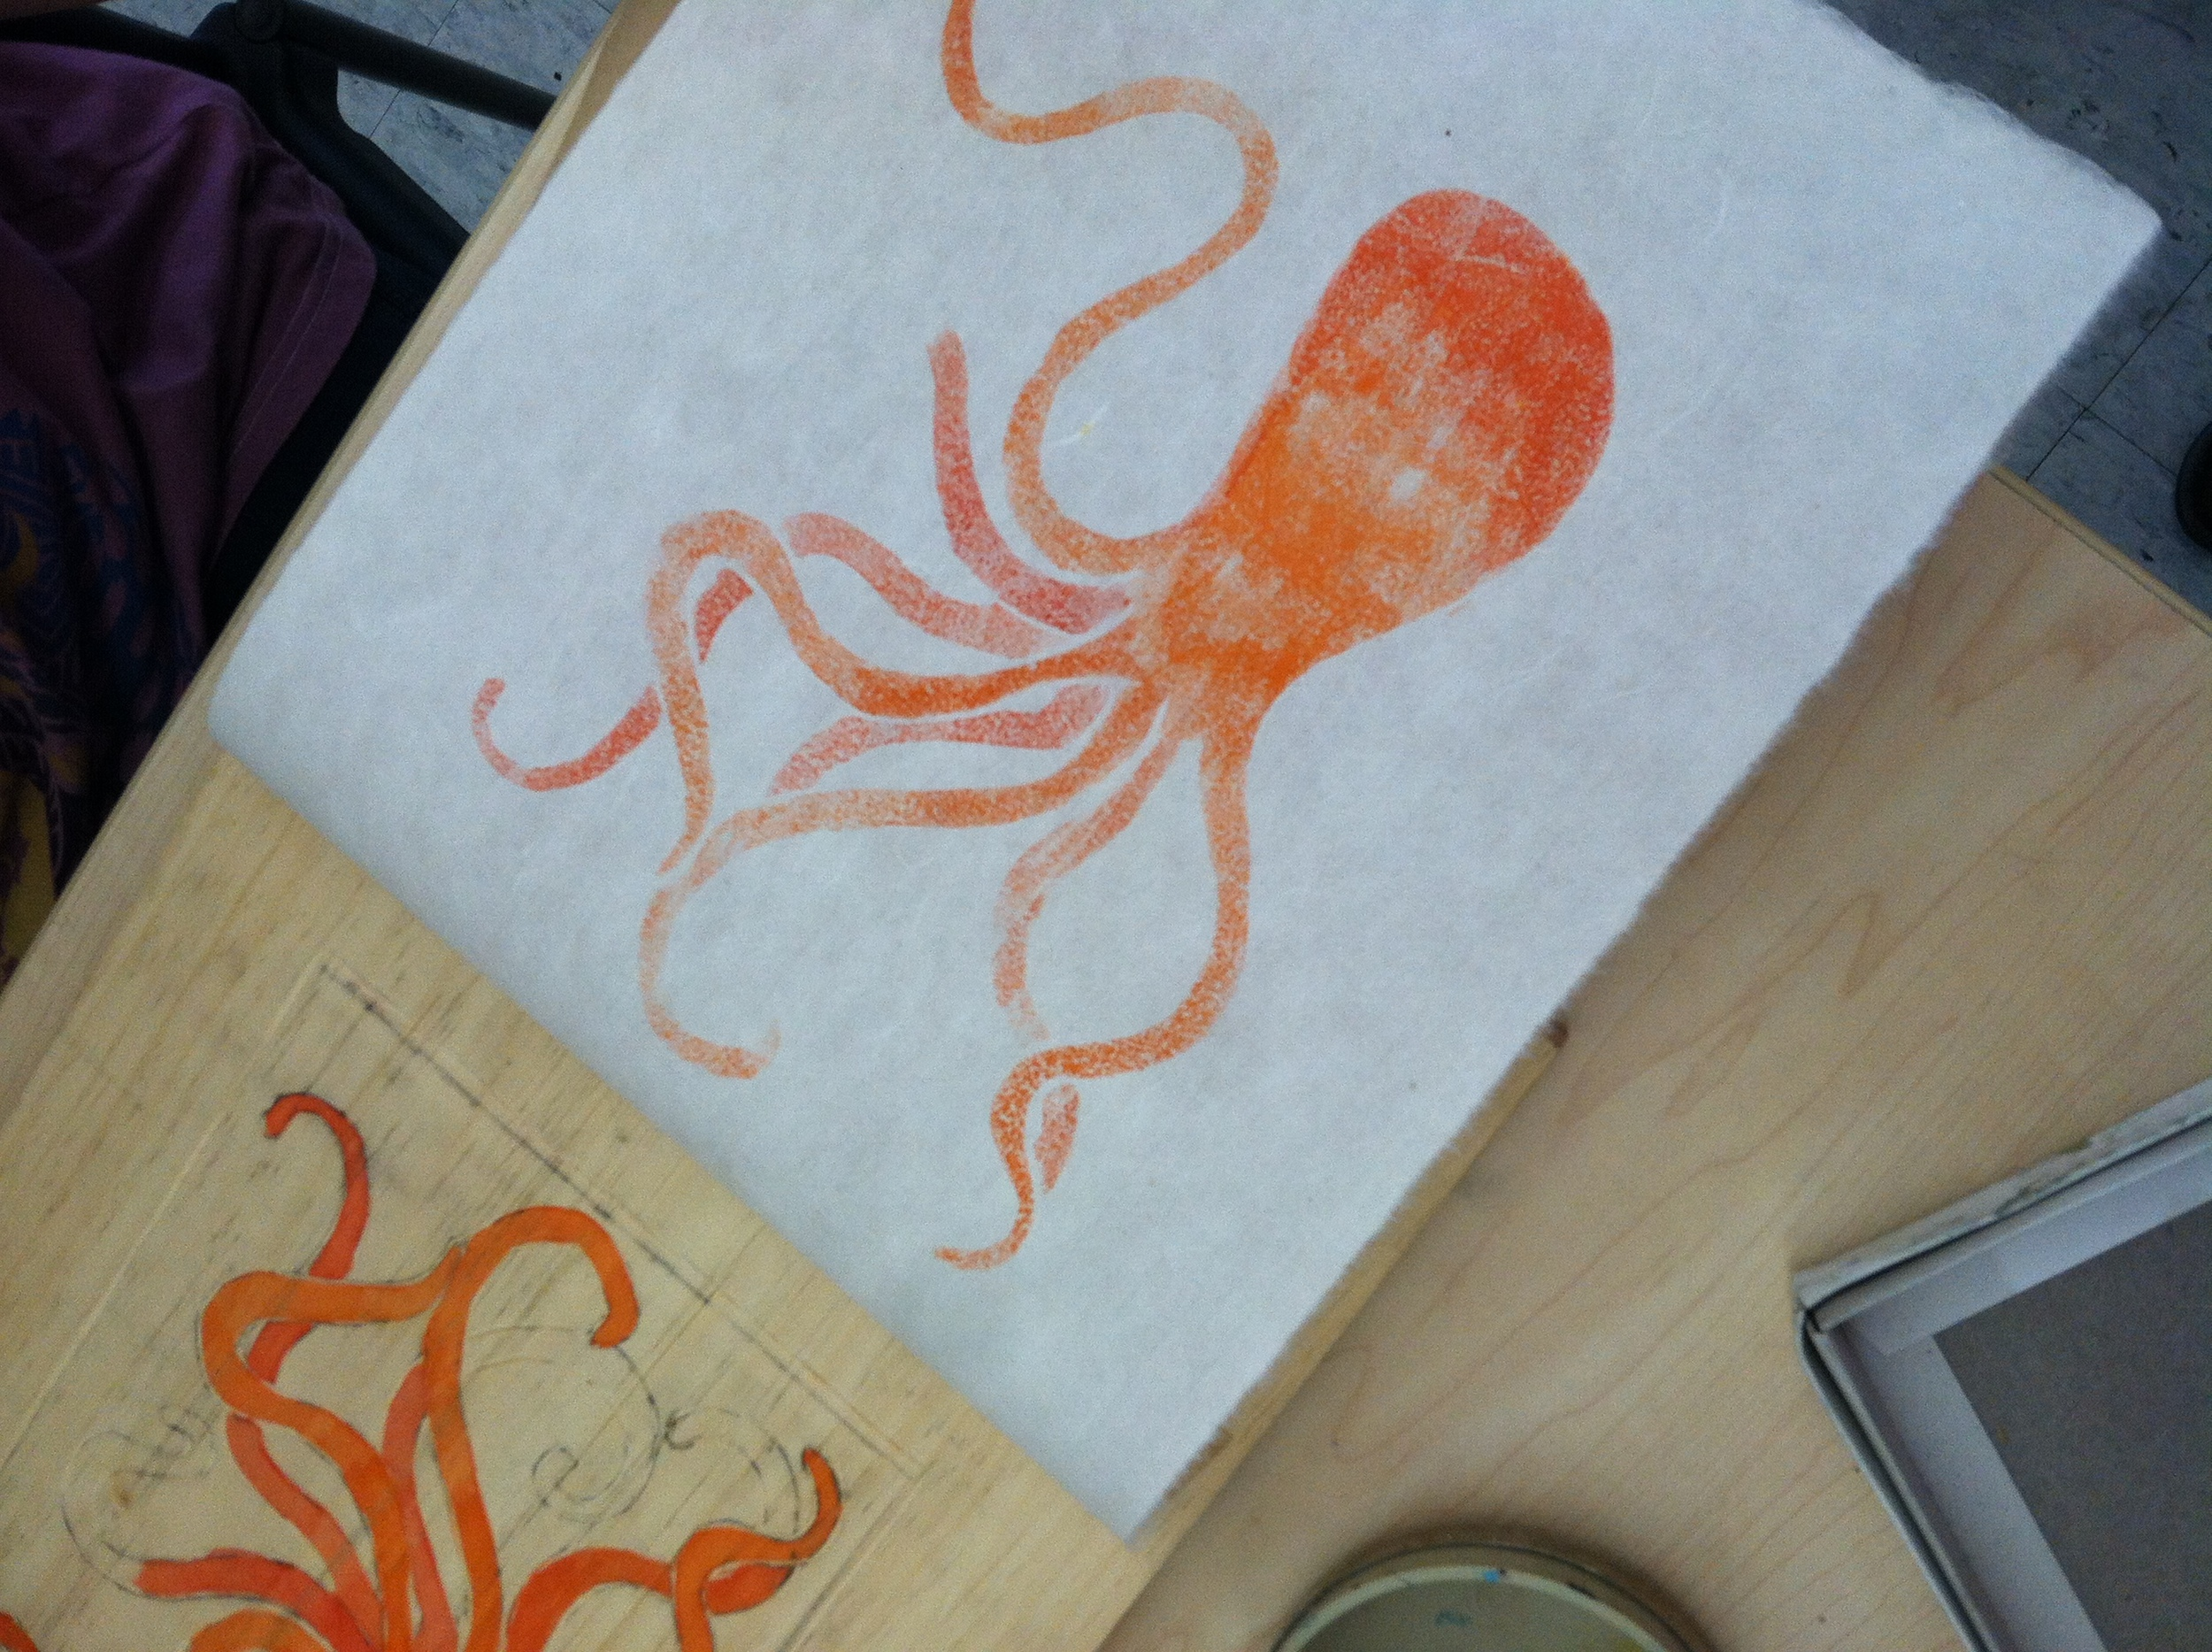 Octopus print by Katie Boulter-Dimock.